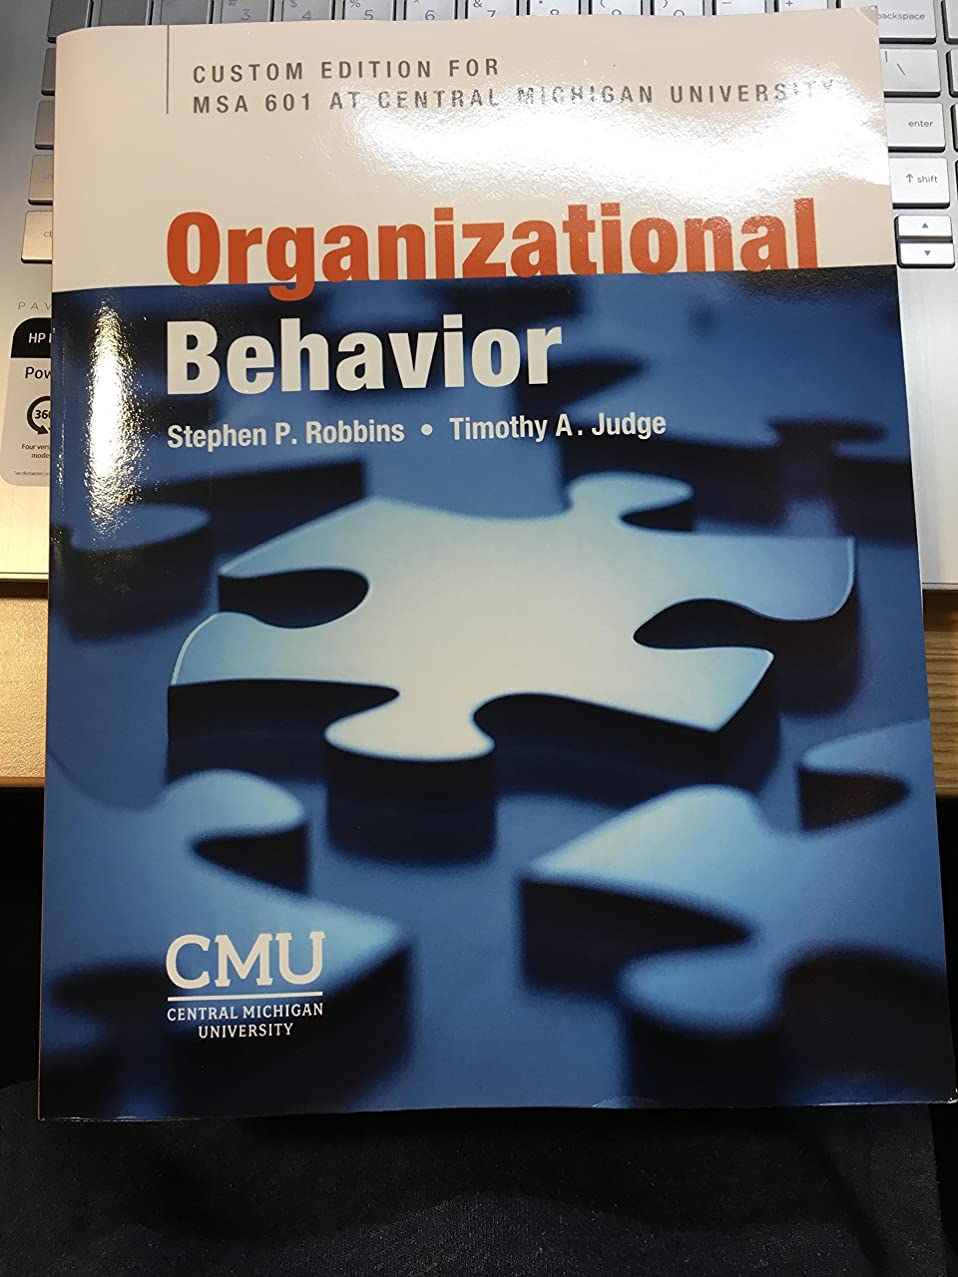 Organizational Behavior Custom Edition For MSA 601 at Central Michigan University